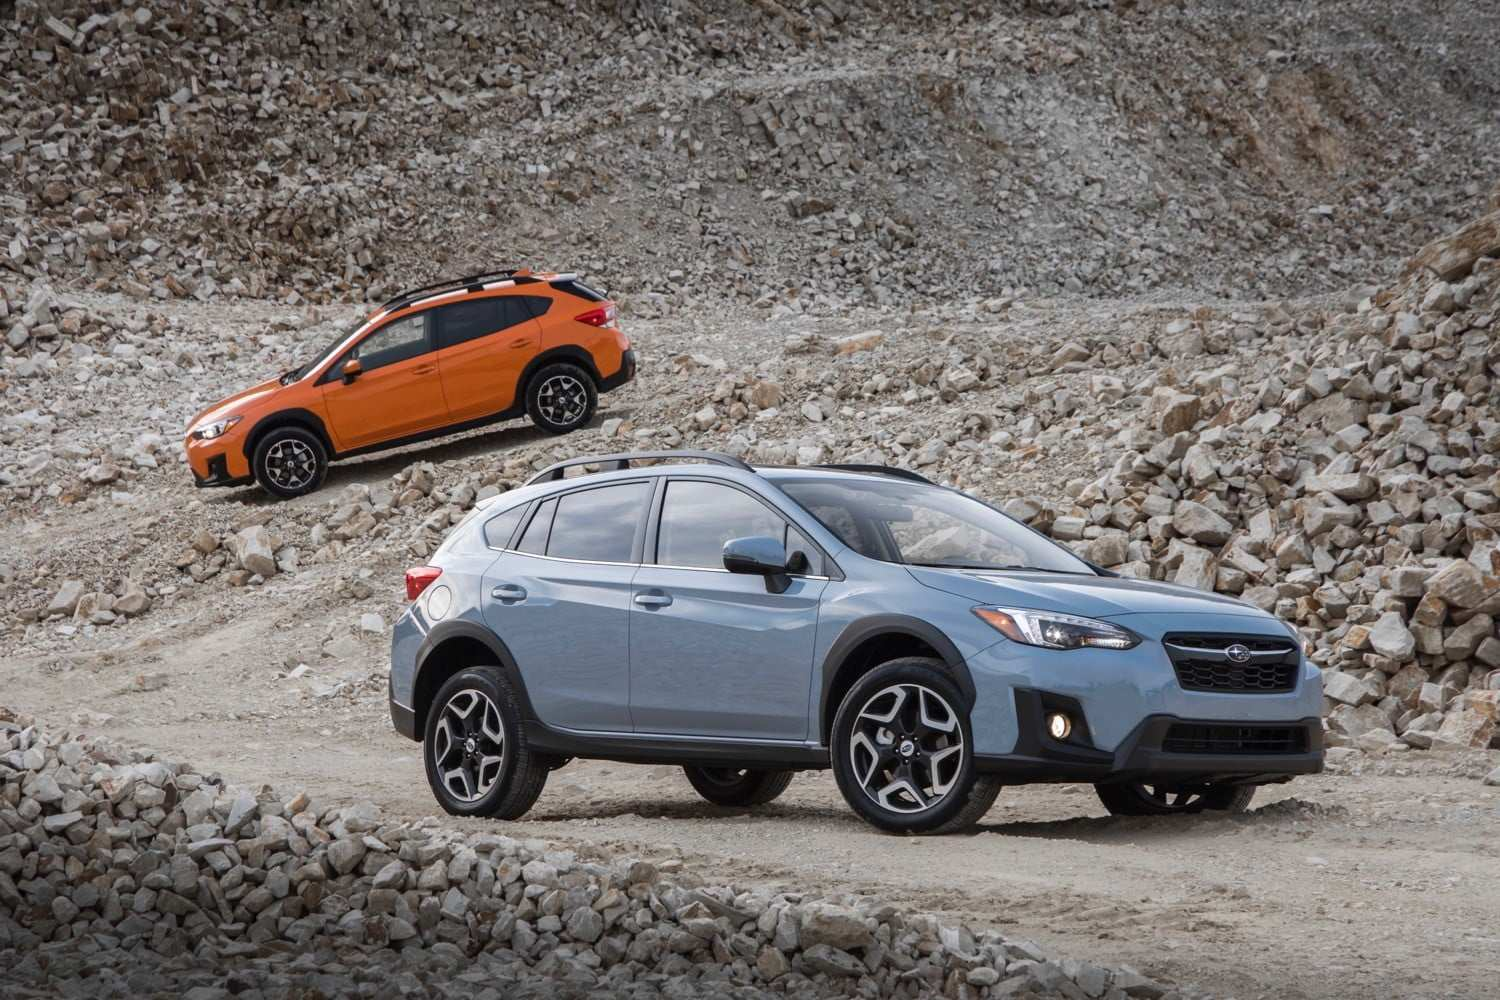 80 All New 2019 Subaru Xv Pictures for 2019 Subaru Xv